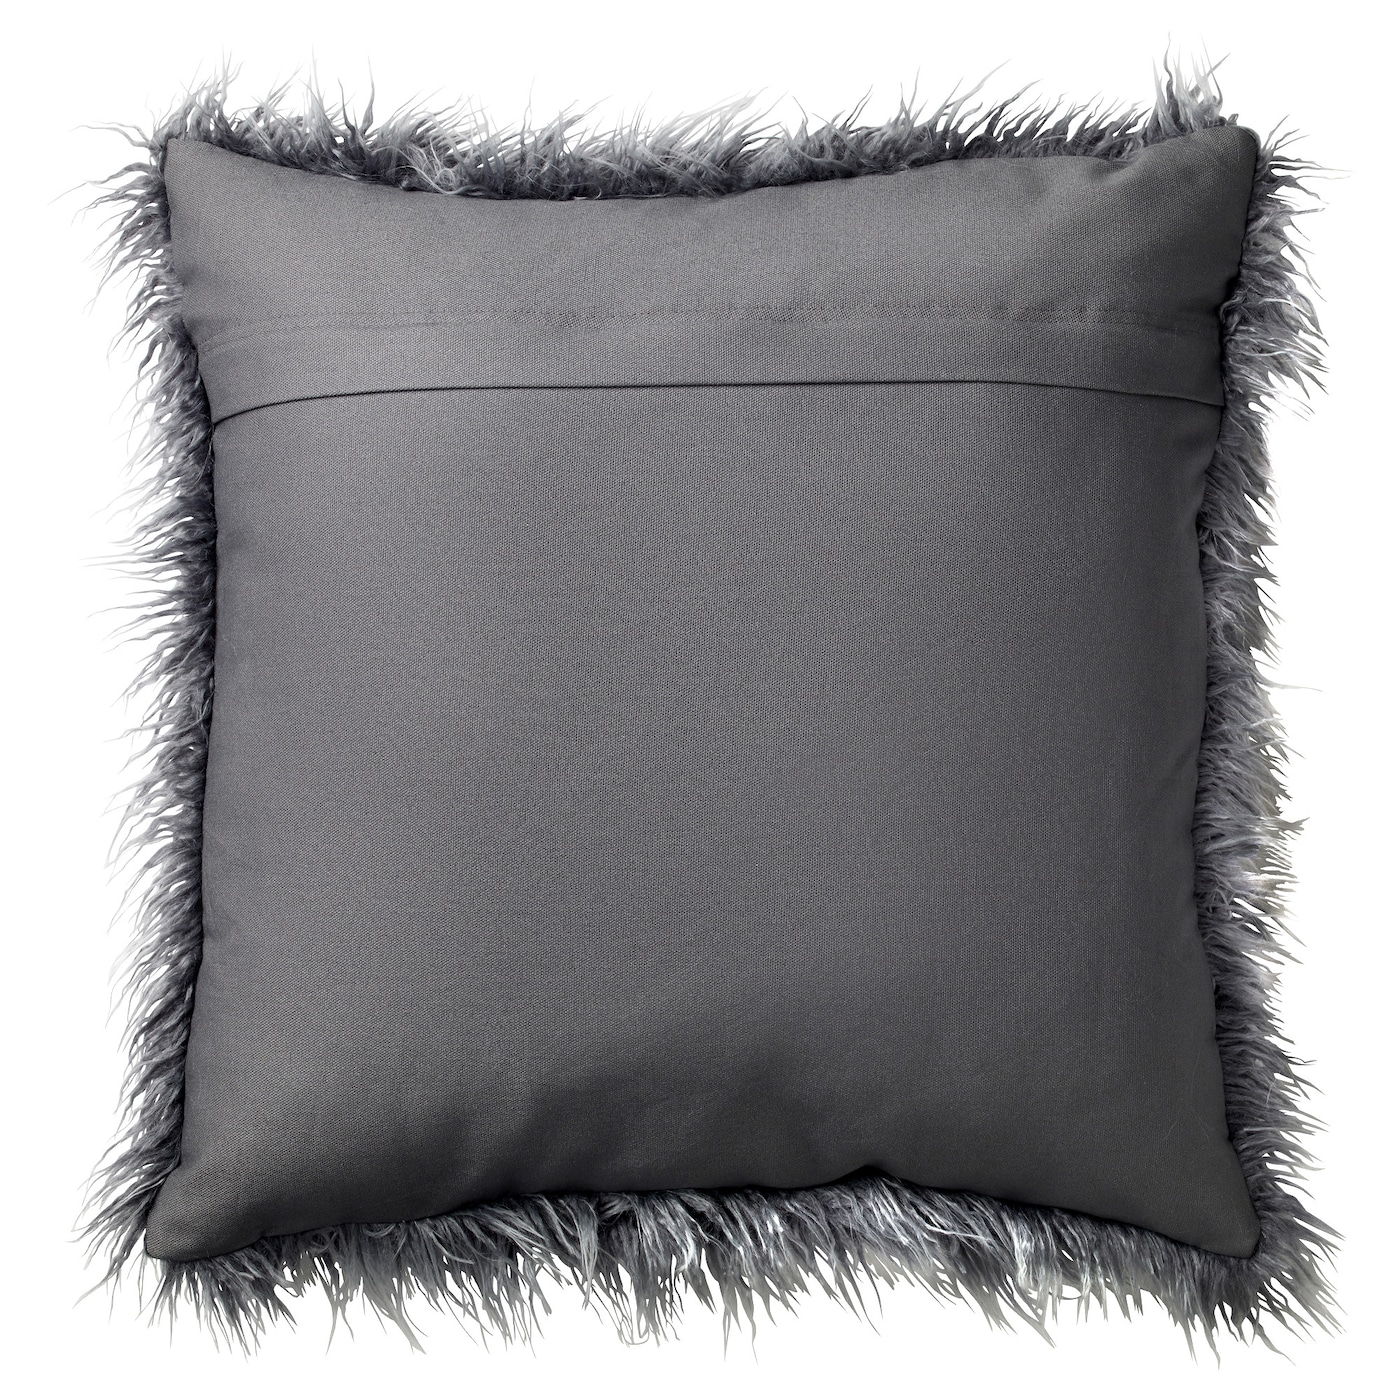 IKEA VINTER 2017 cushion